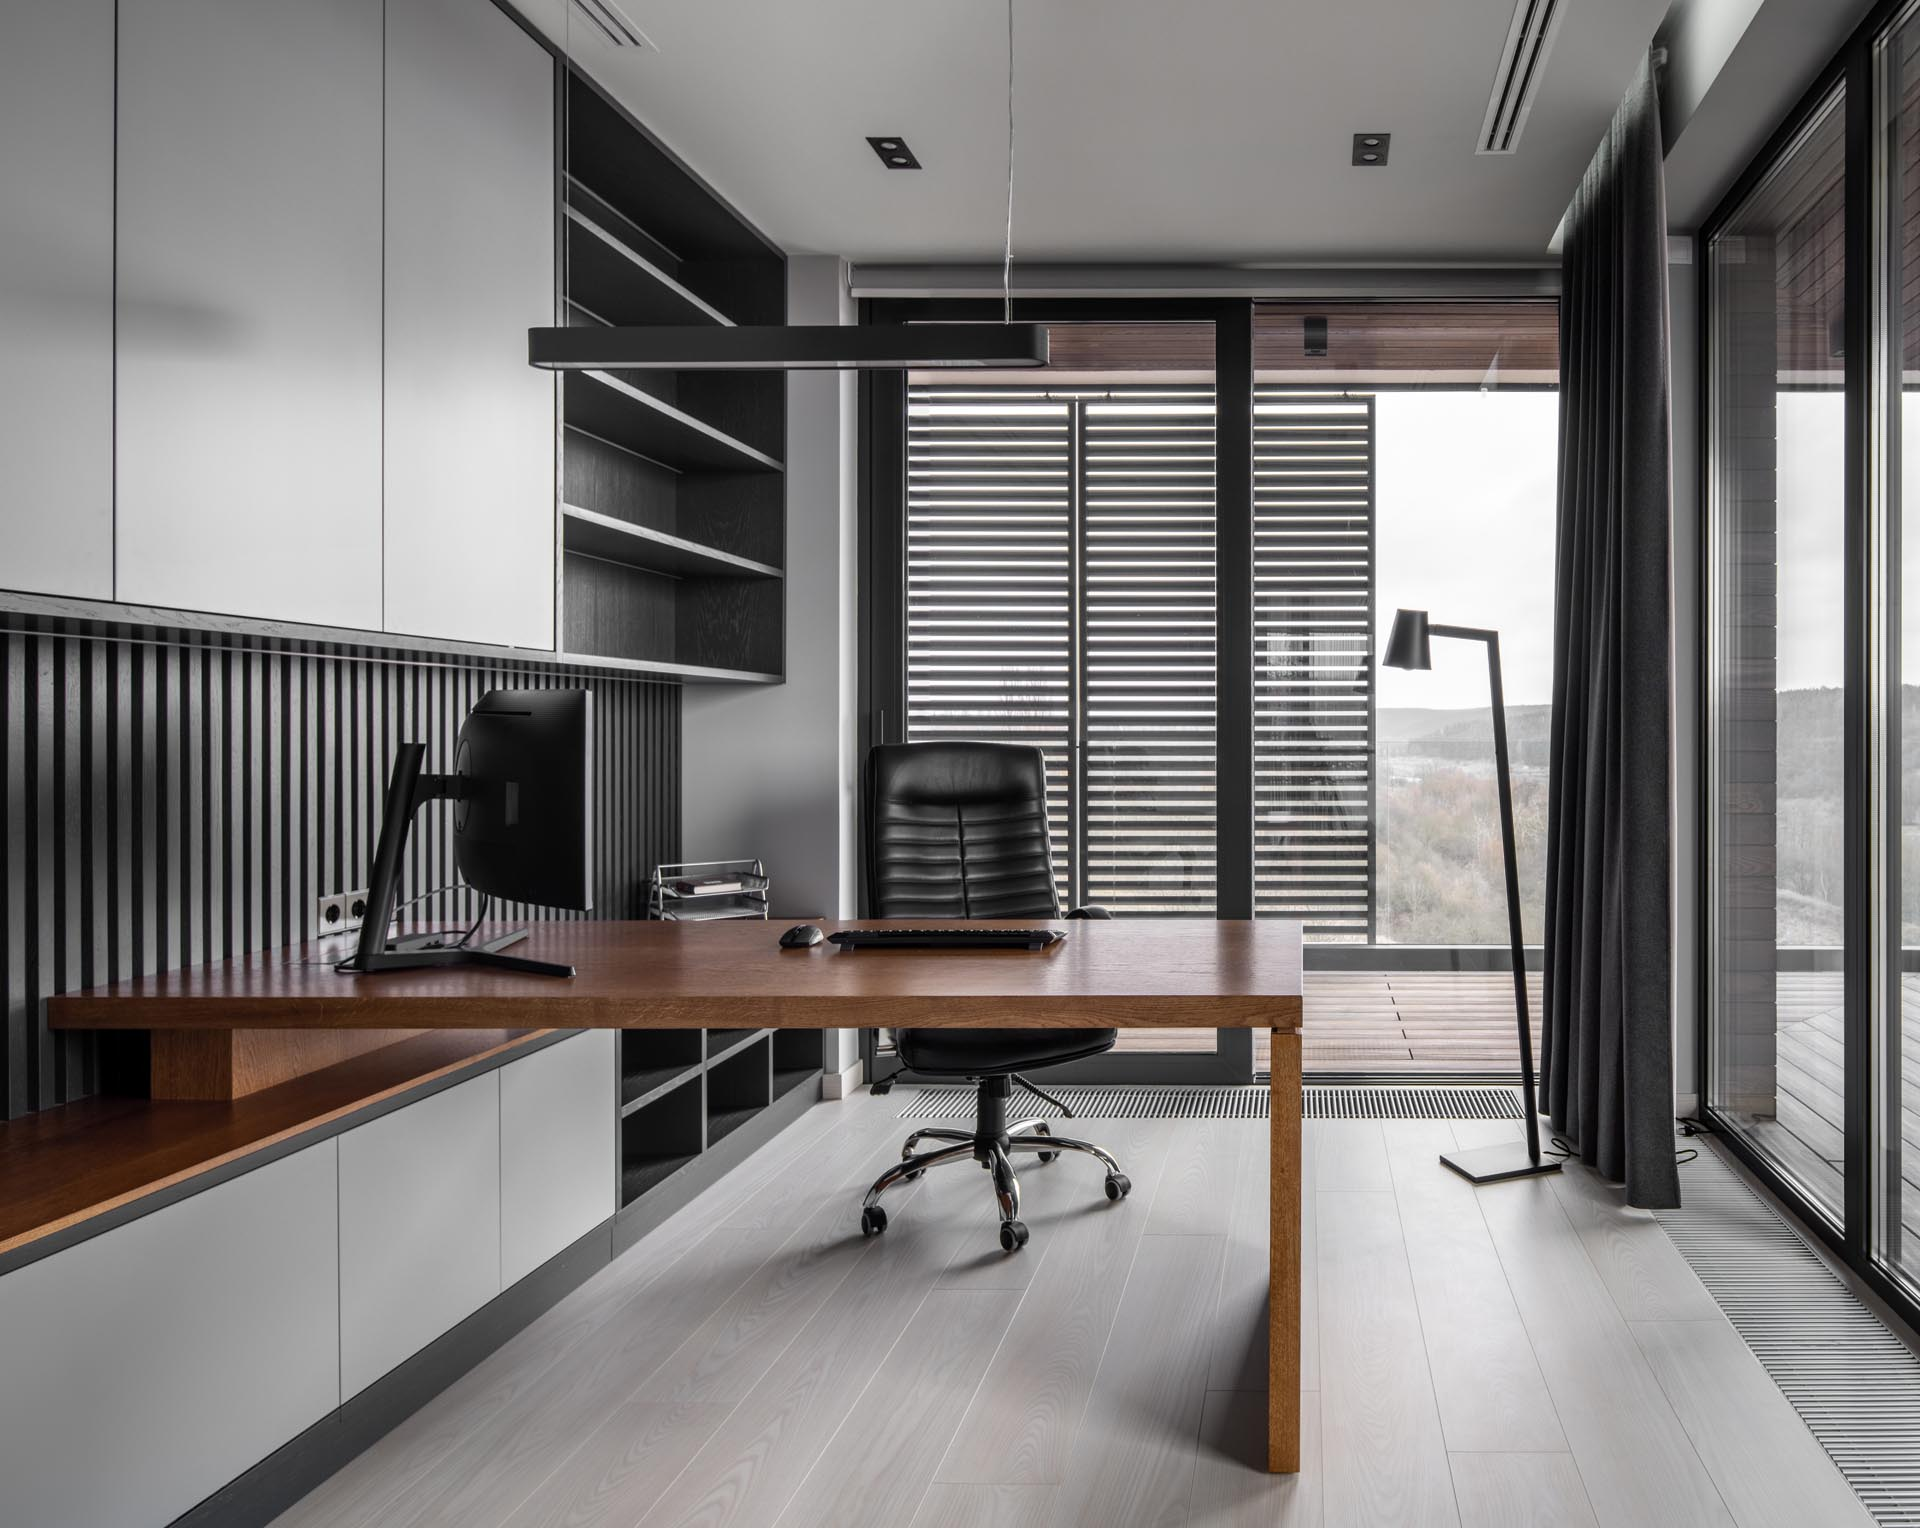 A home office has floor-to-ceiling windows and a built-in cabinetry that incorporates a wood desk.